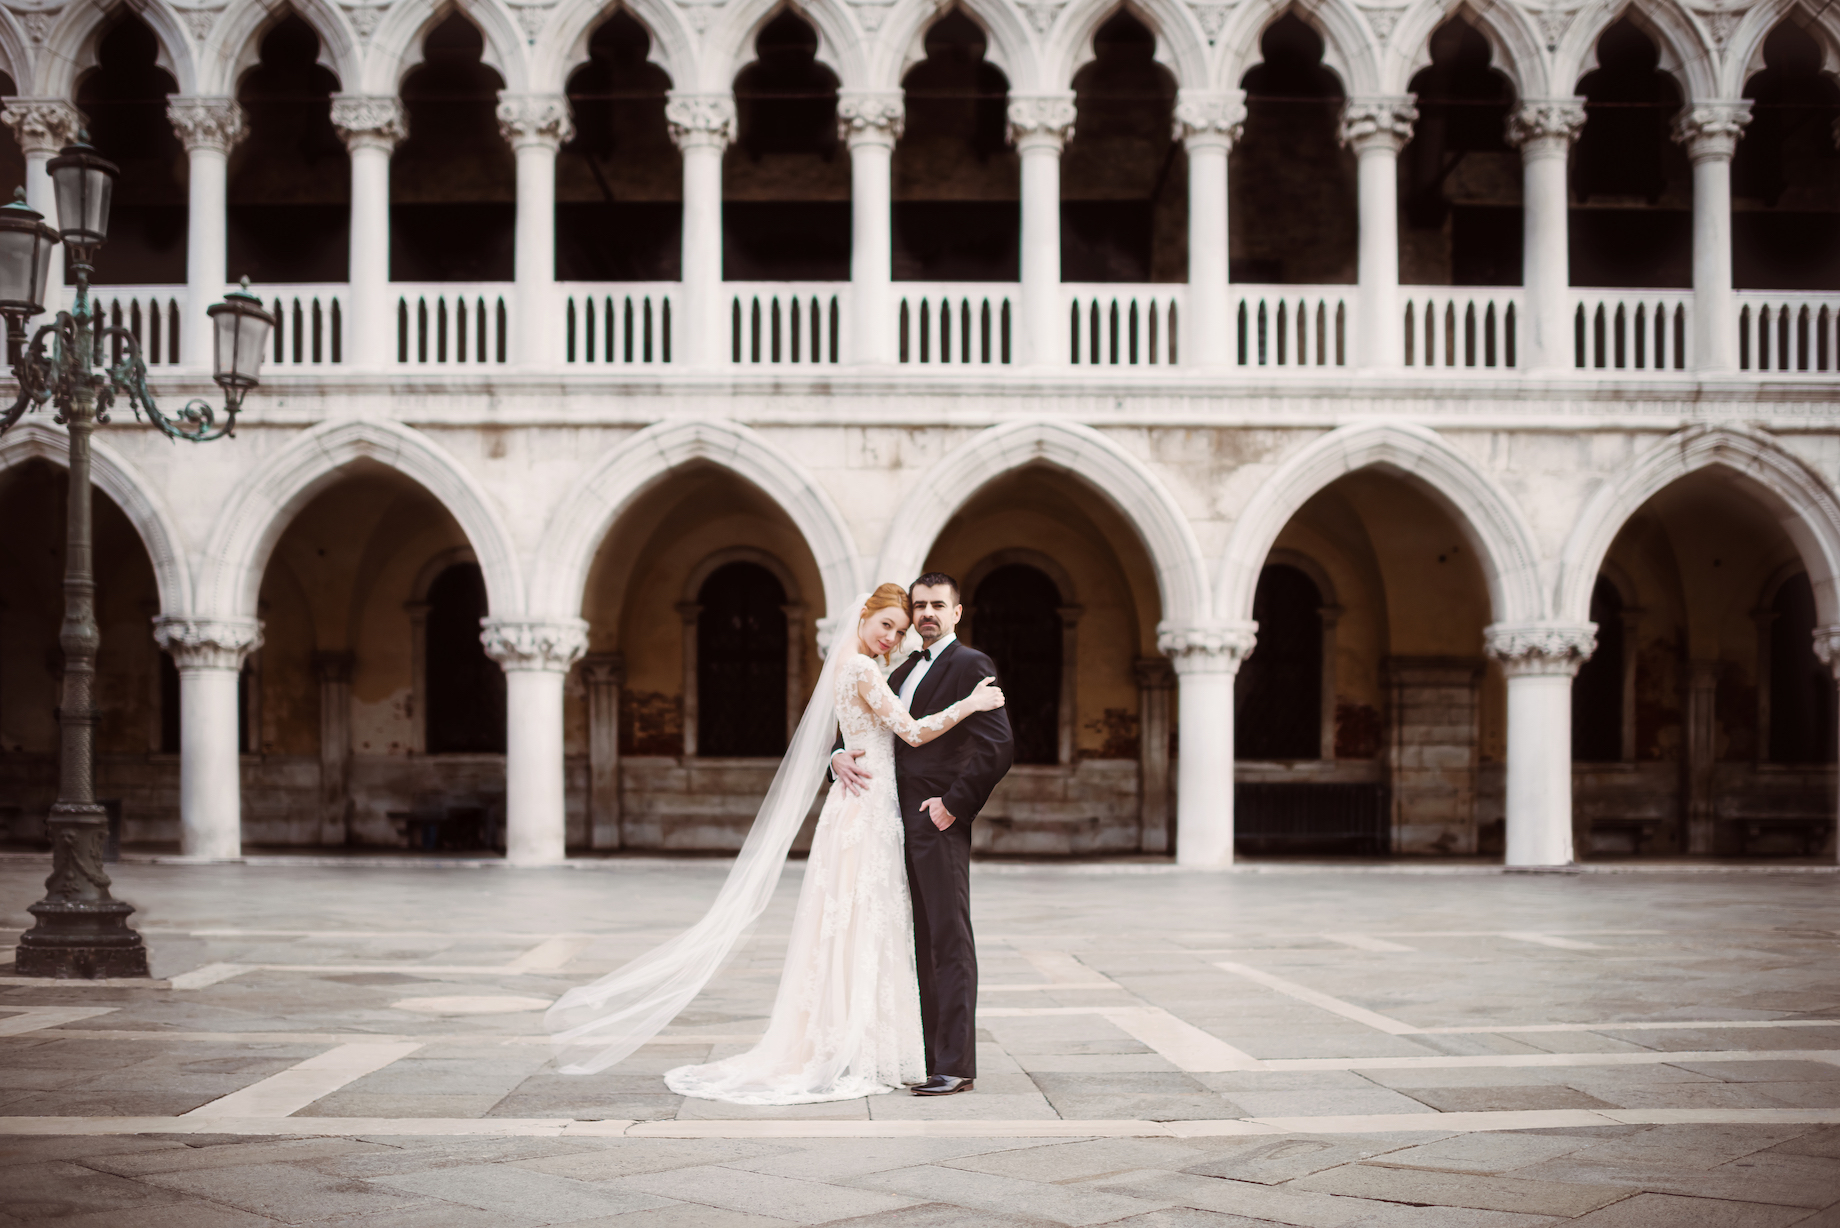 Venice-Wedding-photography-matej-trasak-4.jpg